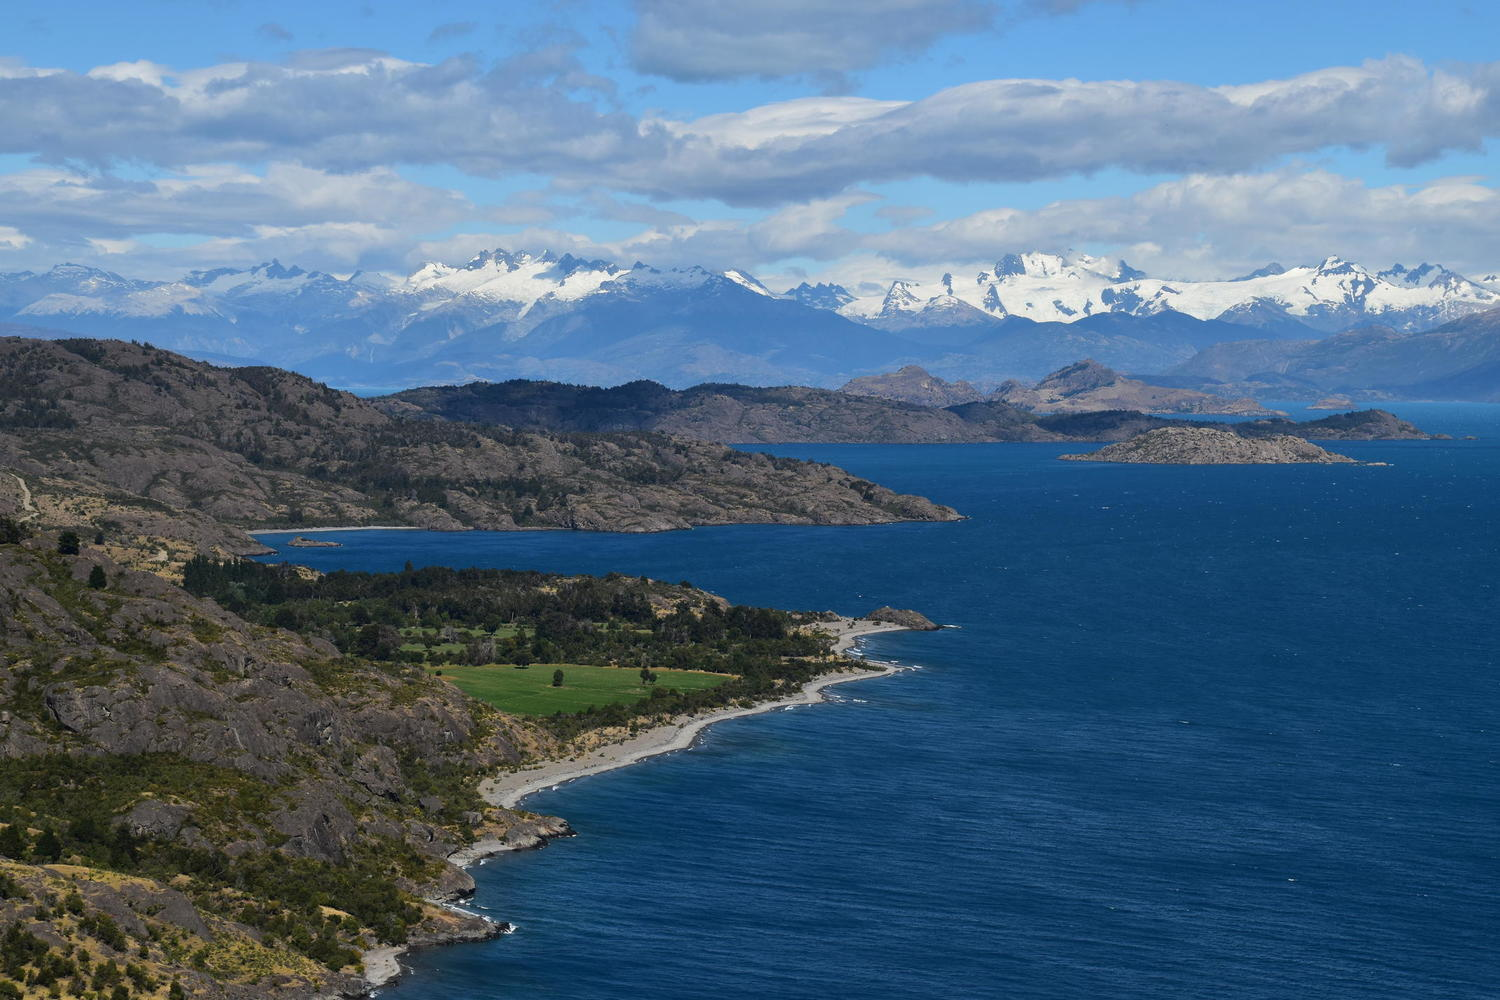 The deep blue waters of Patagonia's Lago General Carrera